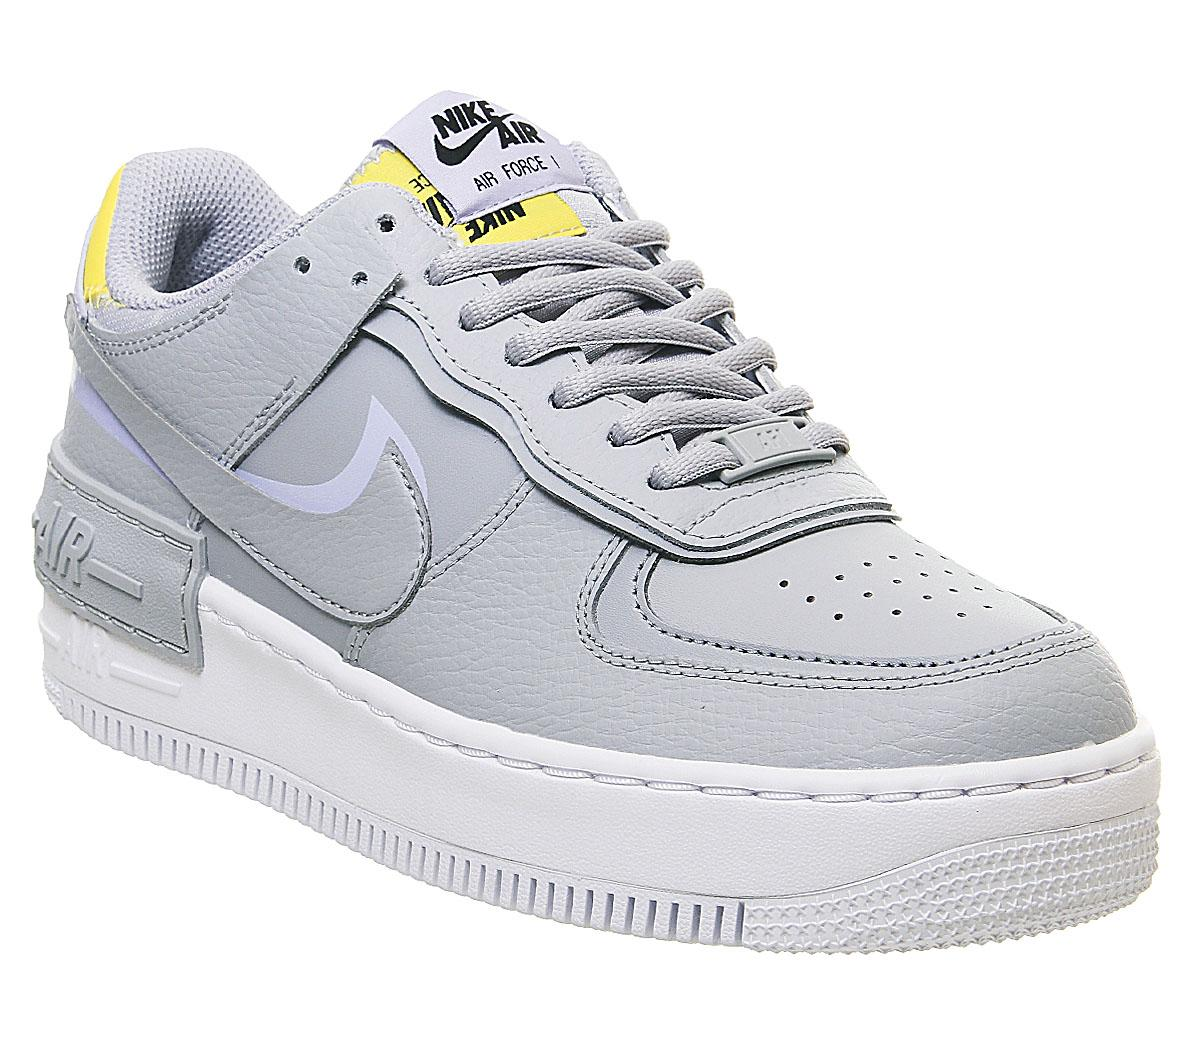 Nike Air Force 1 Shadow Trainers Wolf Grey Chrom Yellow Lavendar Mist His Trainers 4.42 / 5 13 votes. air force 1 shadow trainers